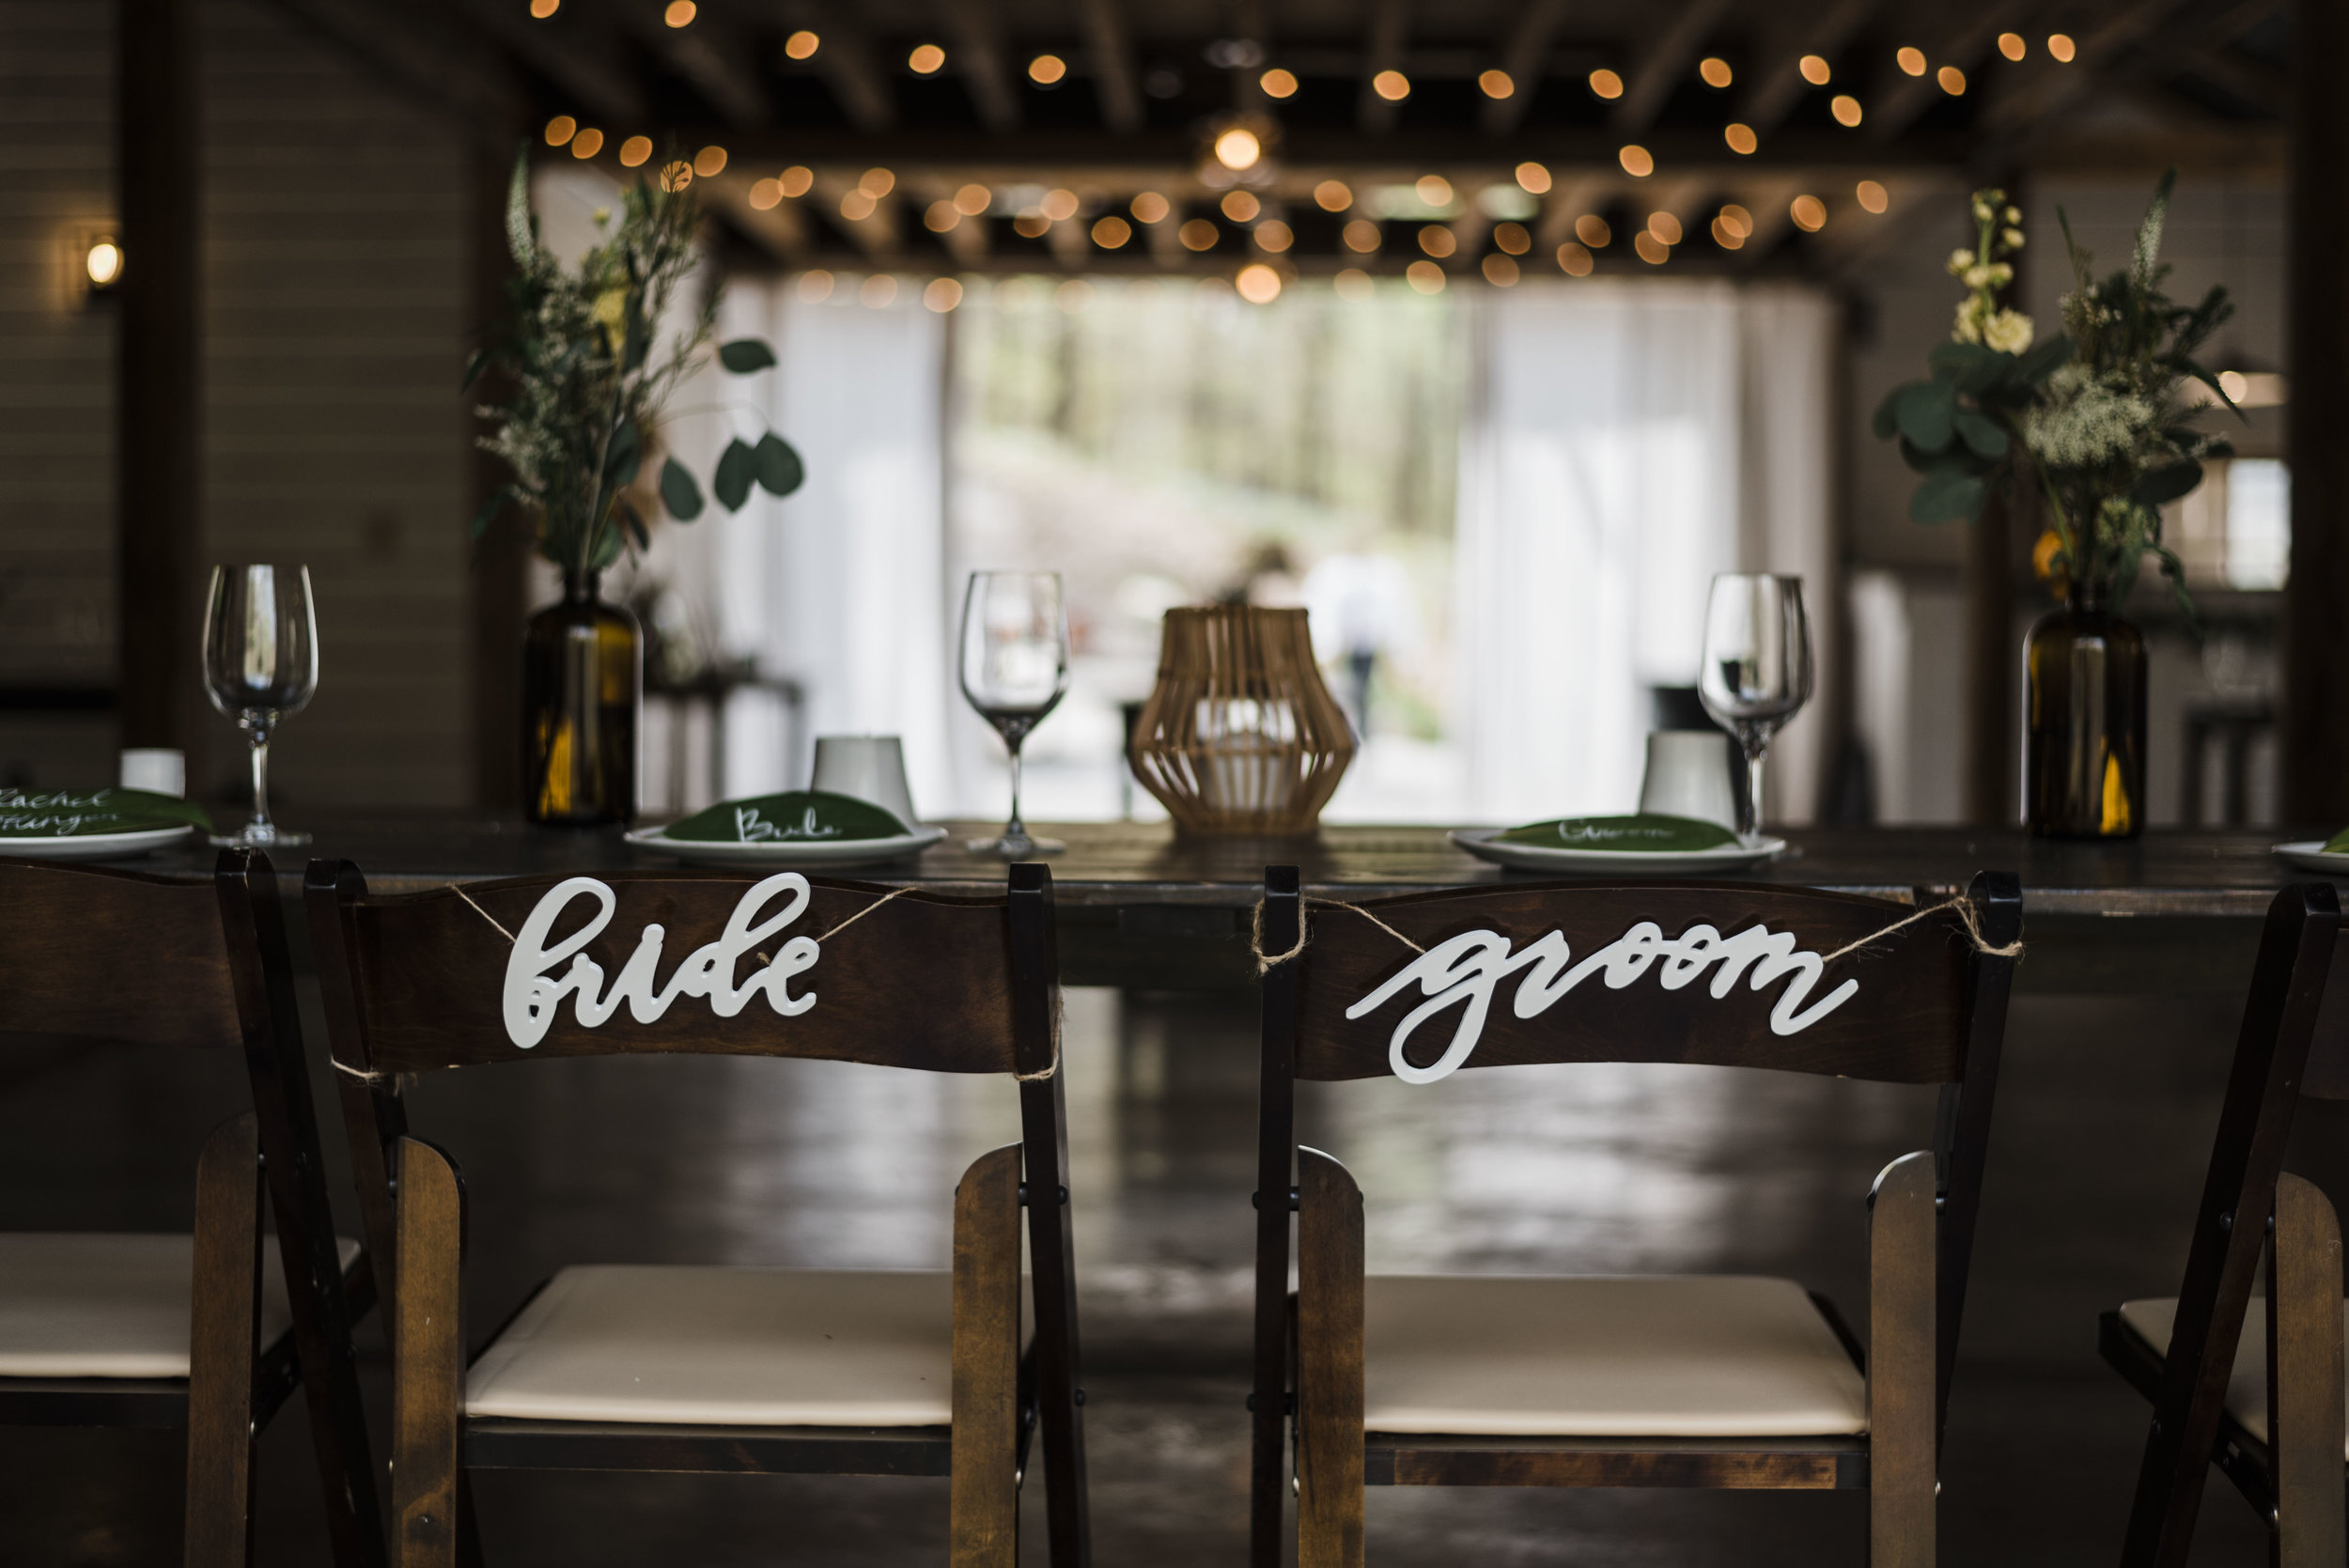 wedding bride and groom chairs dinner chattanooga Tennessee barn